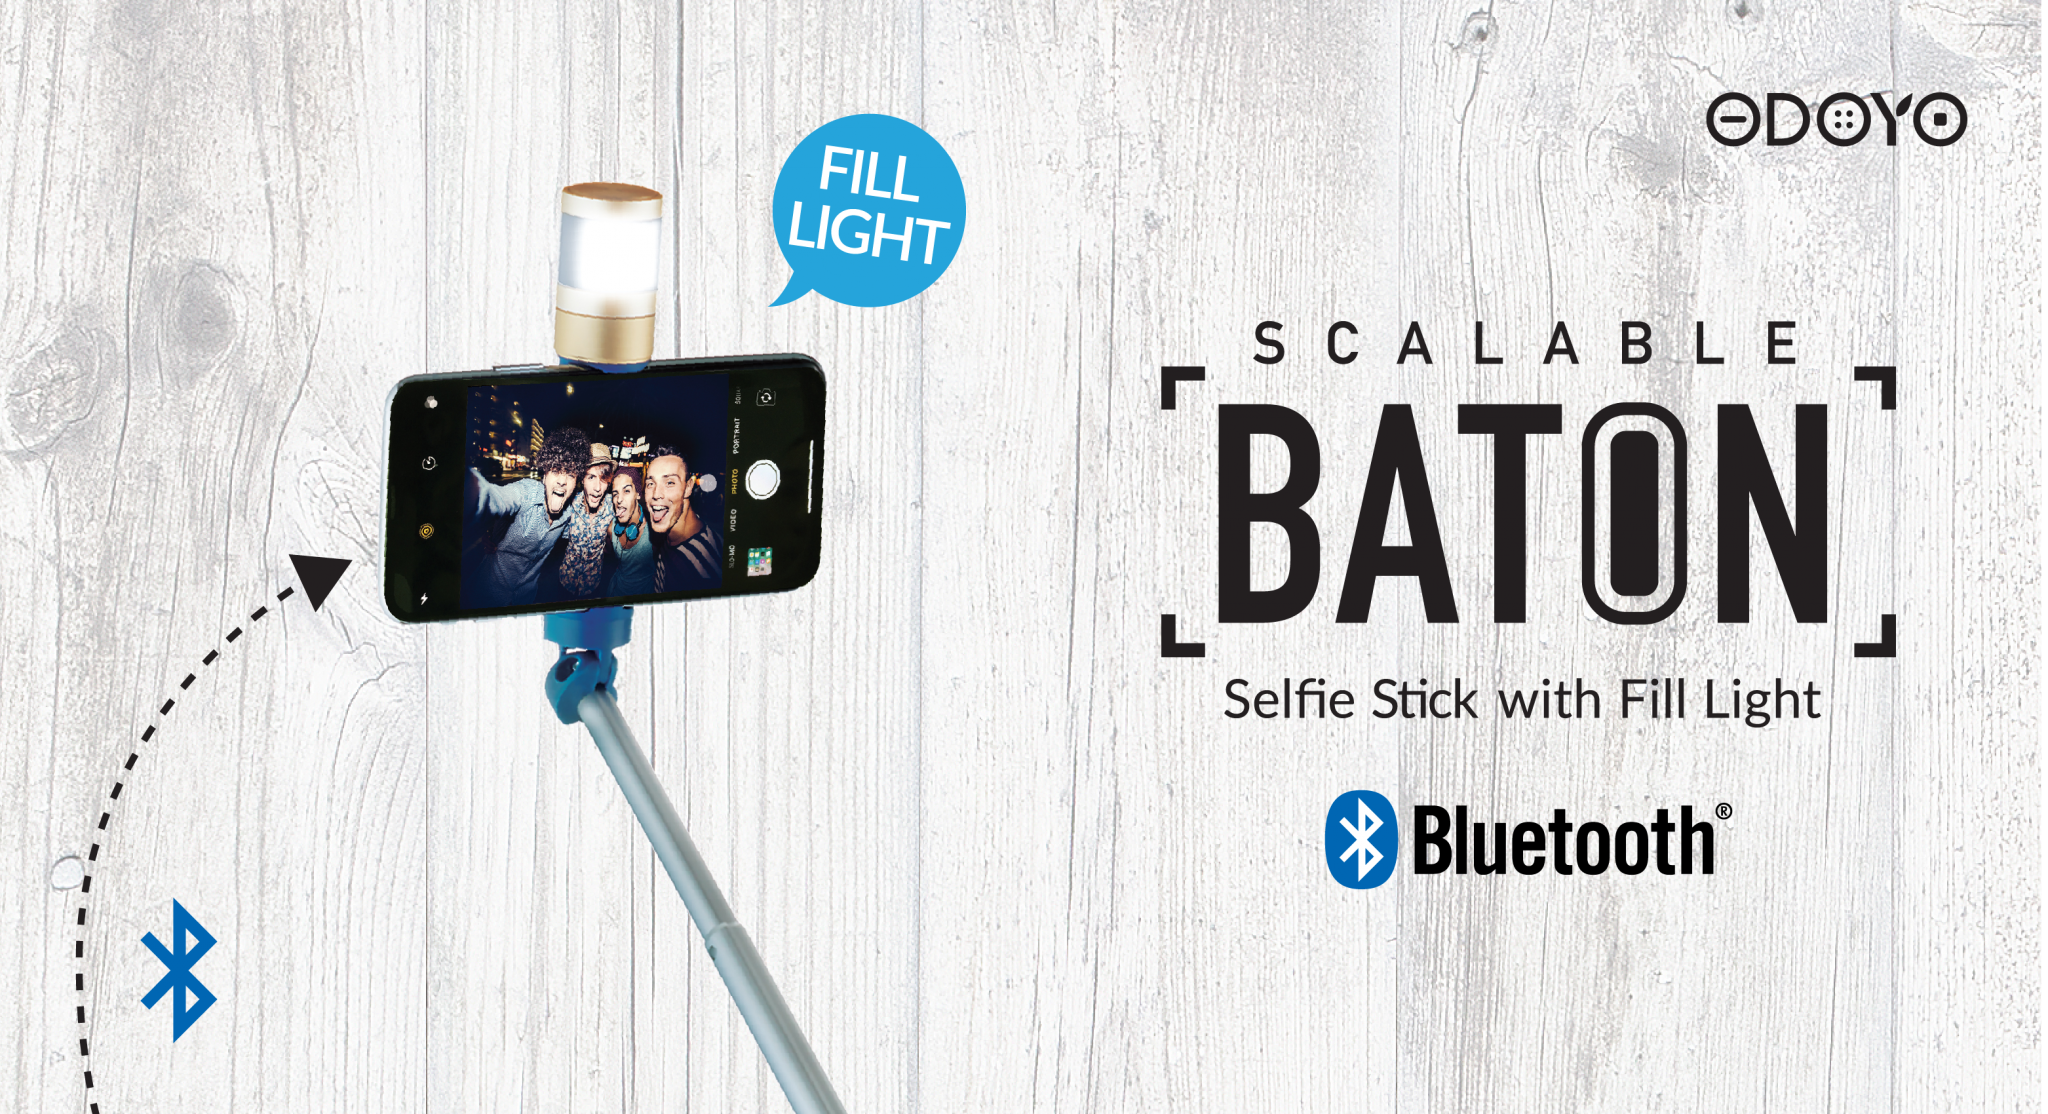 (ZP100) Scalable Baton - Selfie Stick with Fill Light